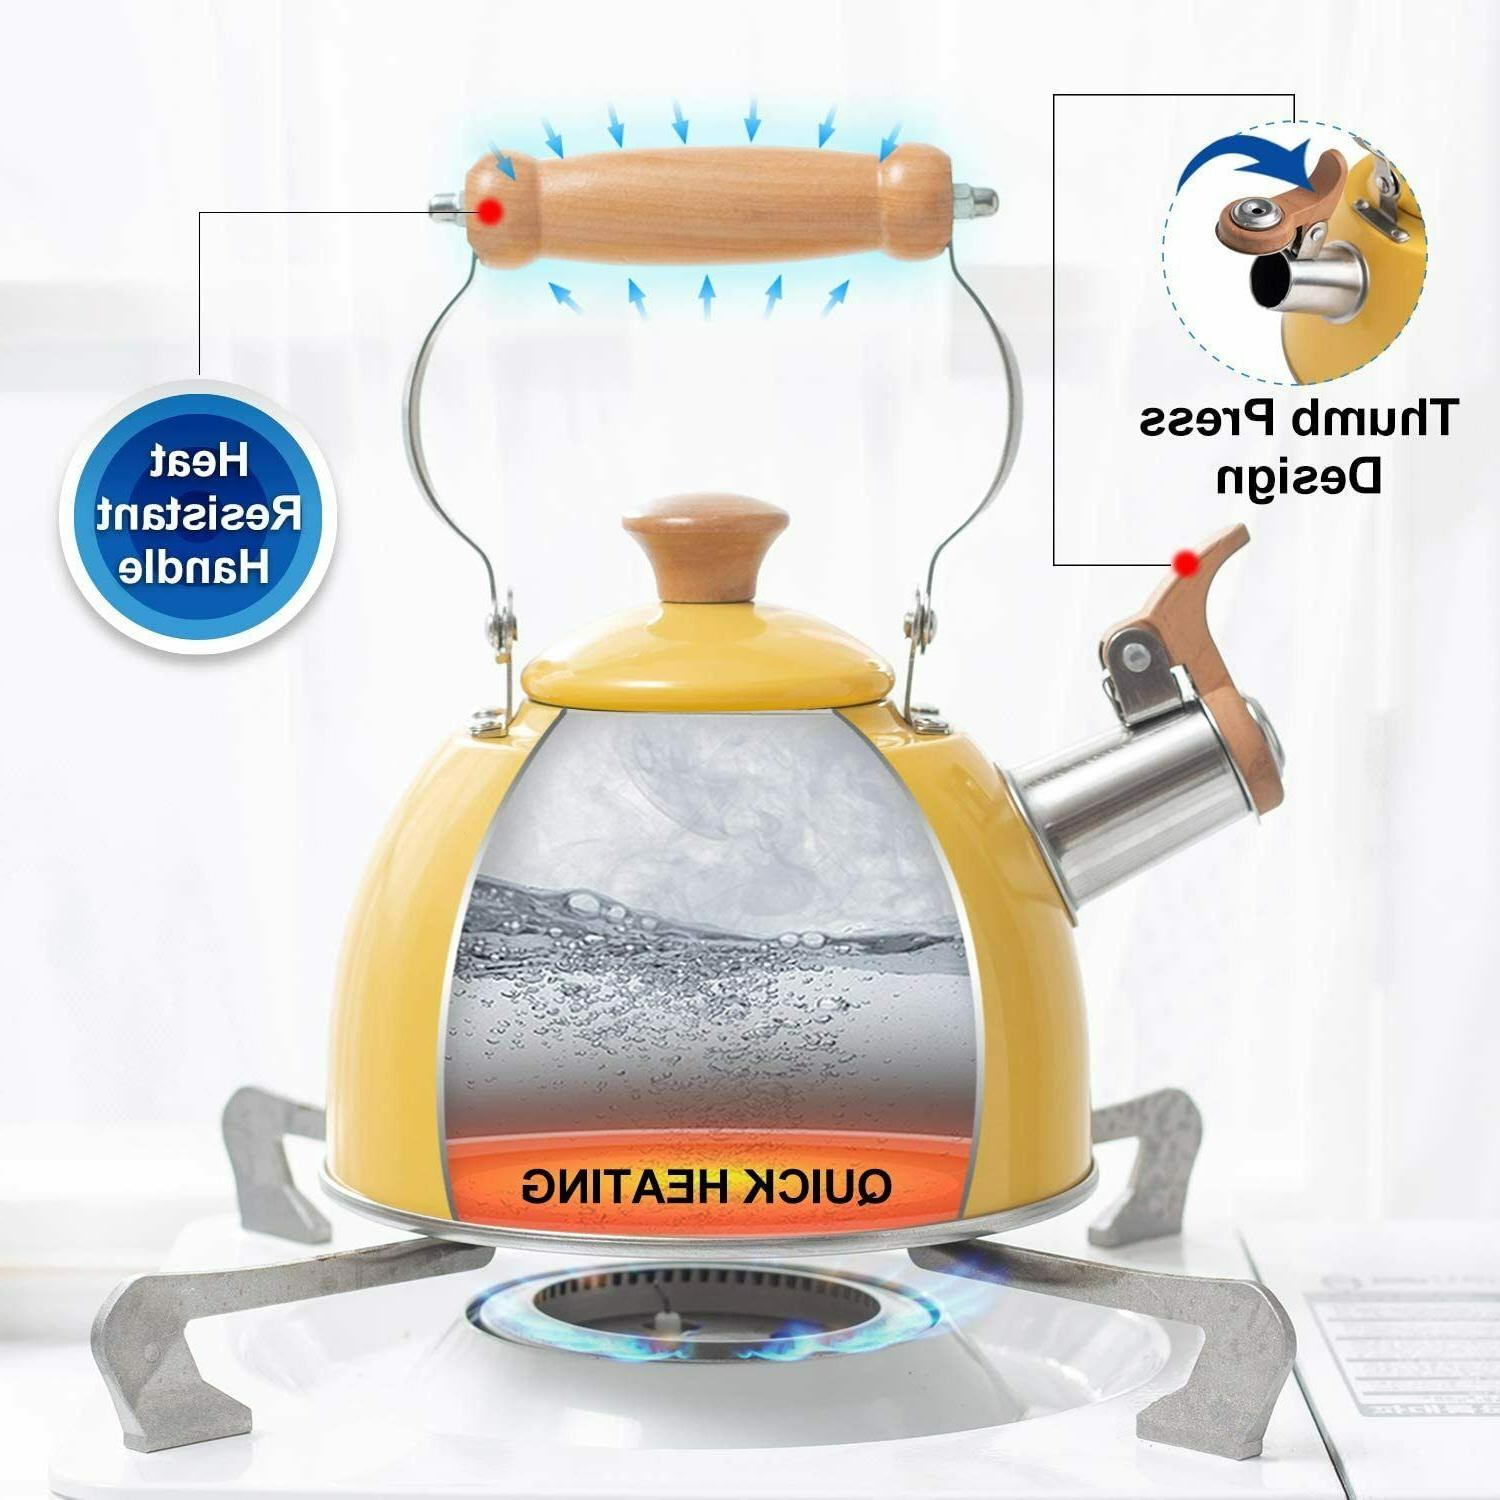 Rockurwok Tea Kettle Whistling Yellow, Steel, Kitchen